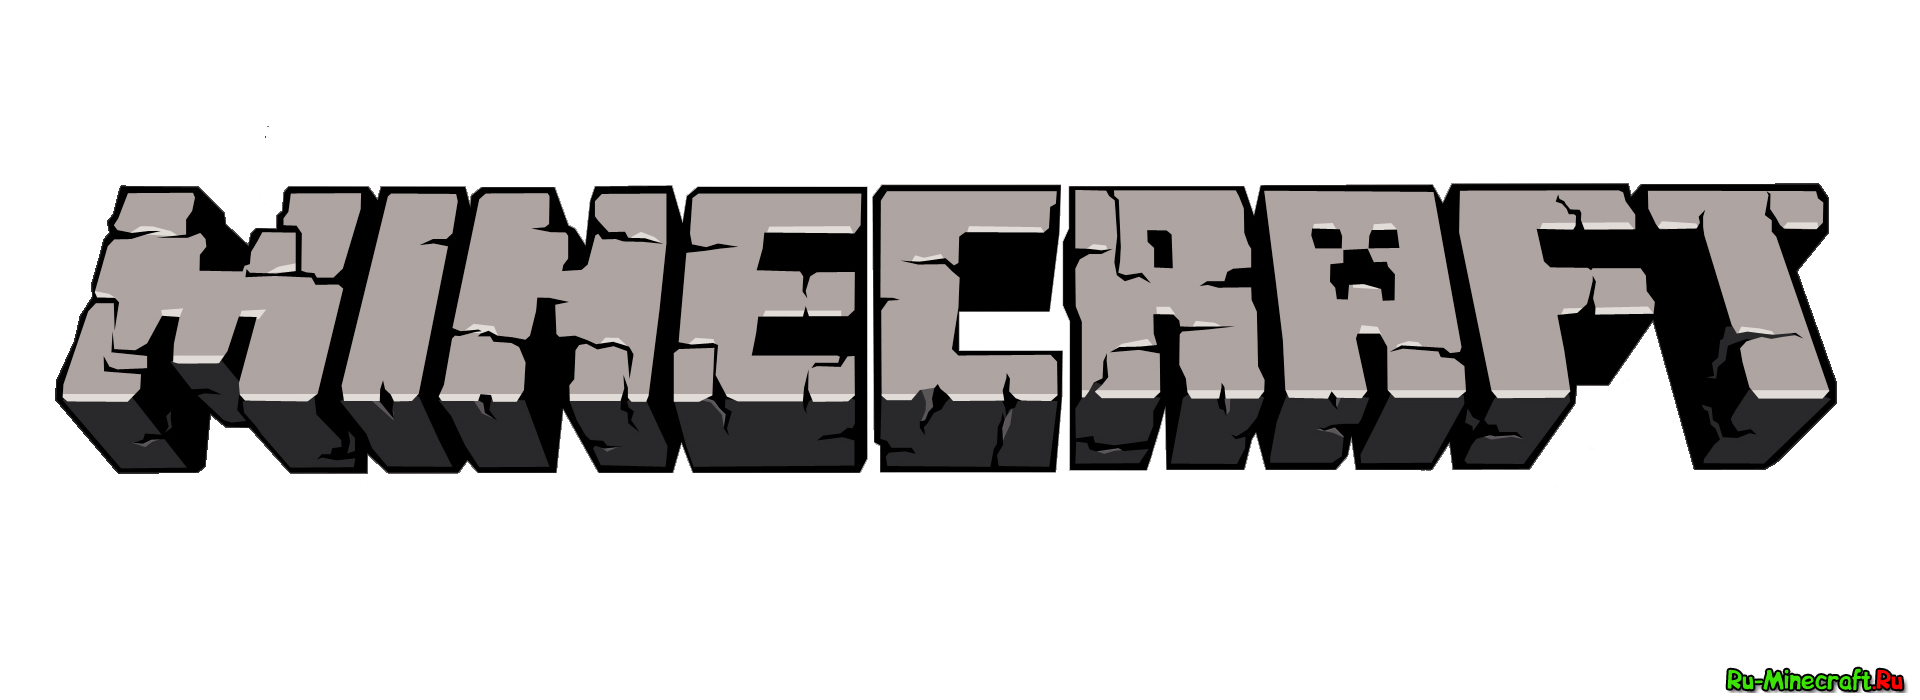 Minecraft Transparent Background Minecraft Logo Transparent